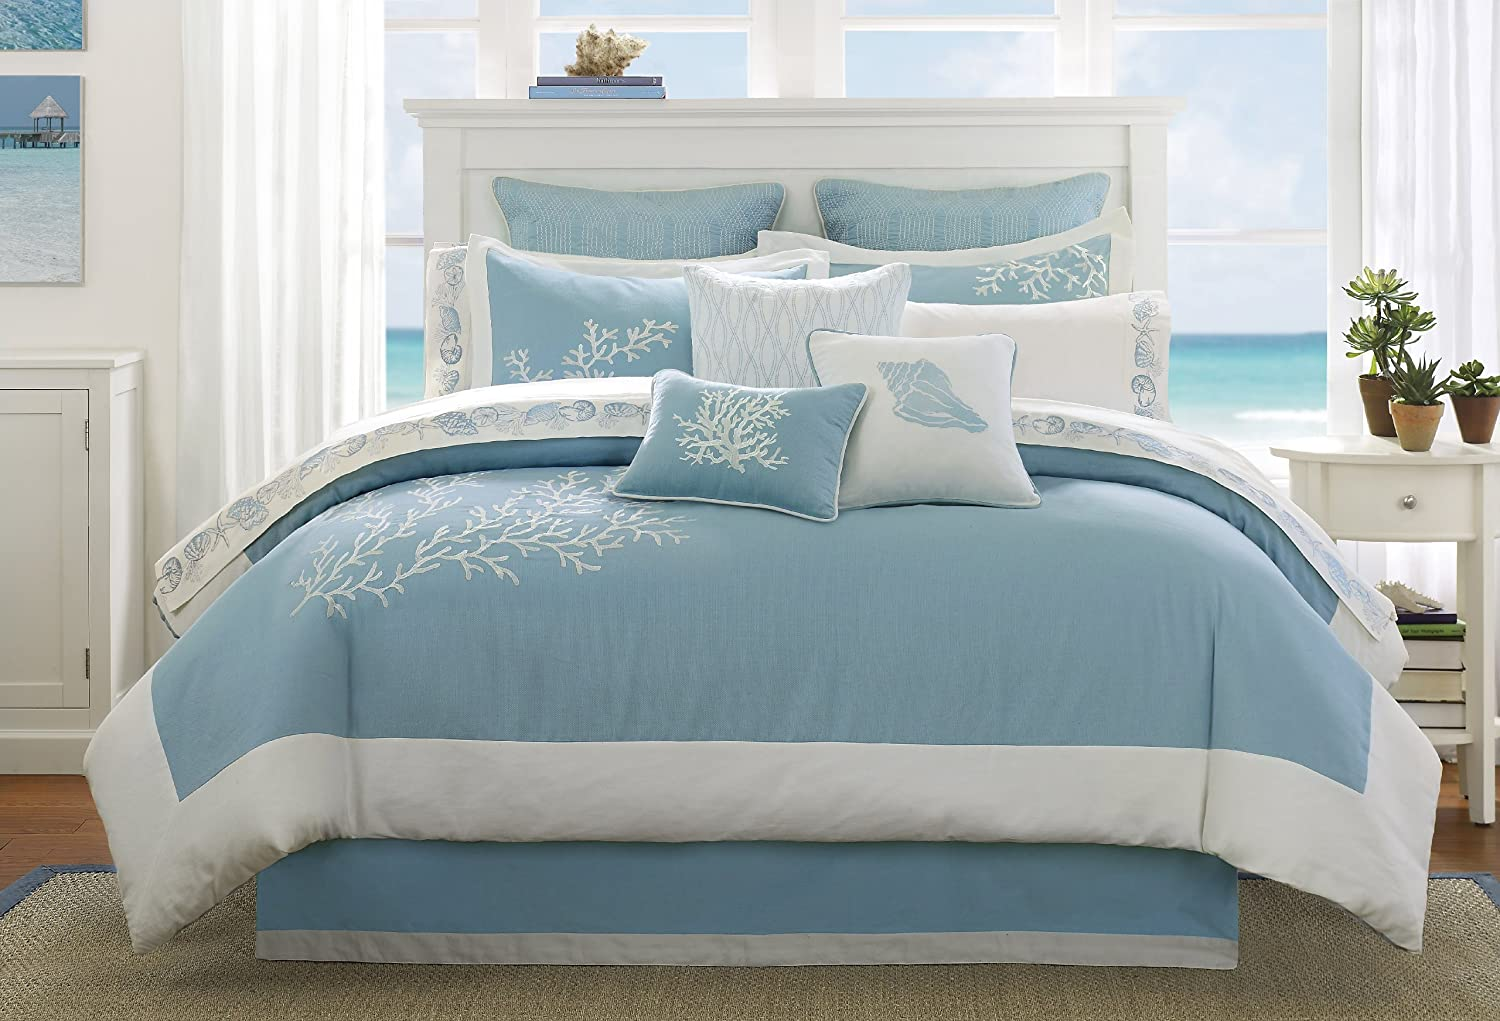 Stunning Beach Bedroom Comforter Sets 1500 x 1021 · 226 kB · jpeg